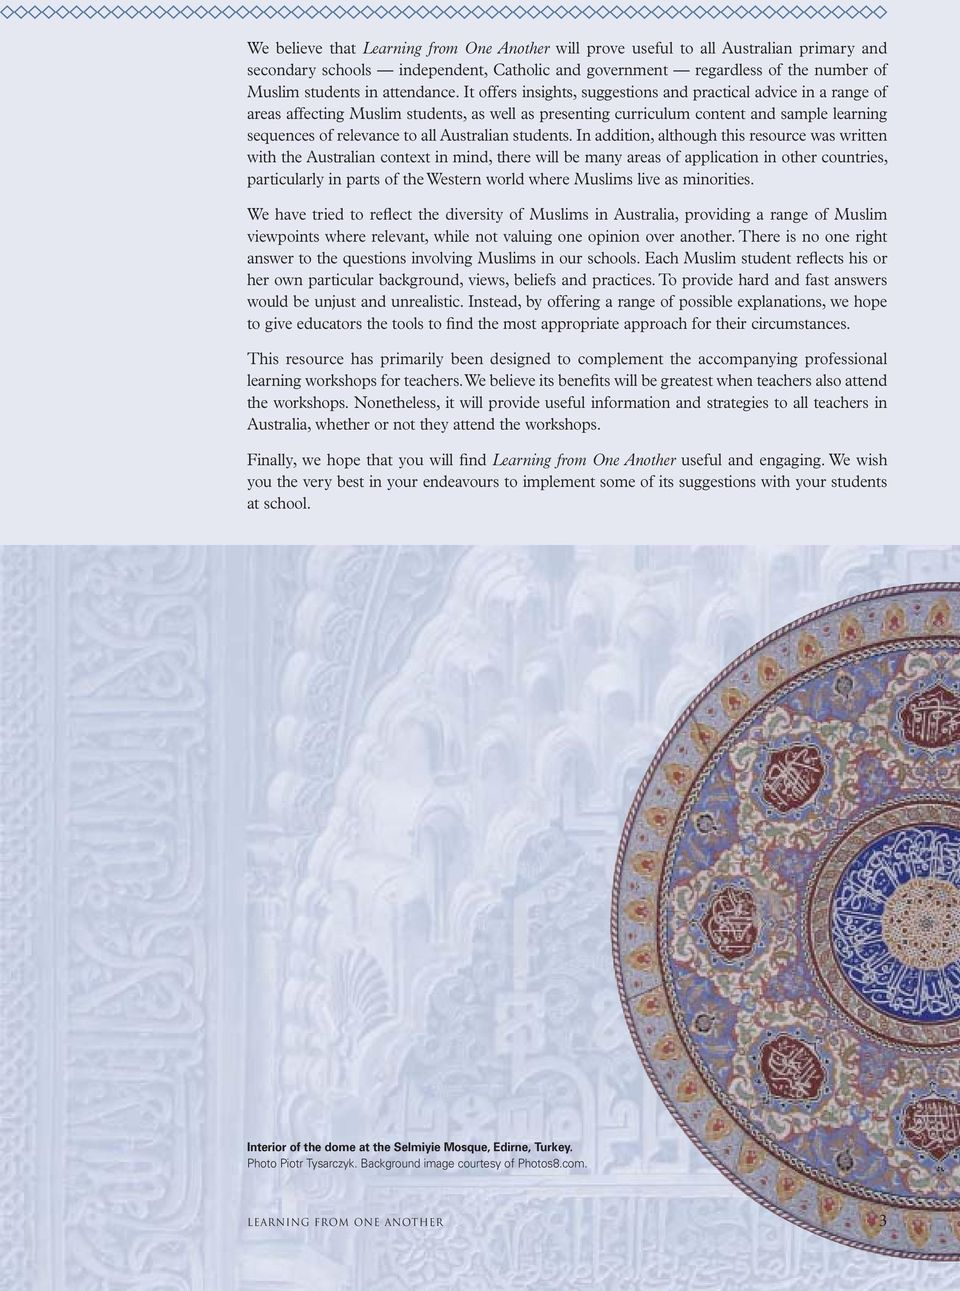 It offers insights, suggestions and practical advice in a range of areas affecting Muslim students, as well as presenting curriculum content and sample learning sequences of relevance to all